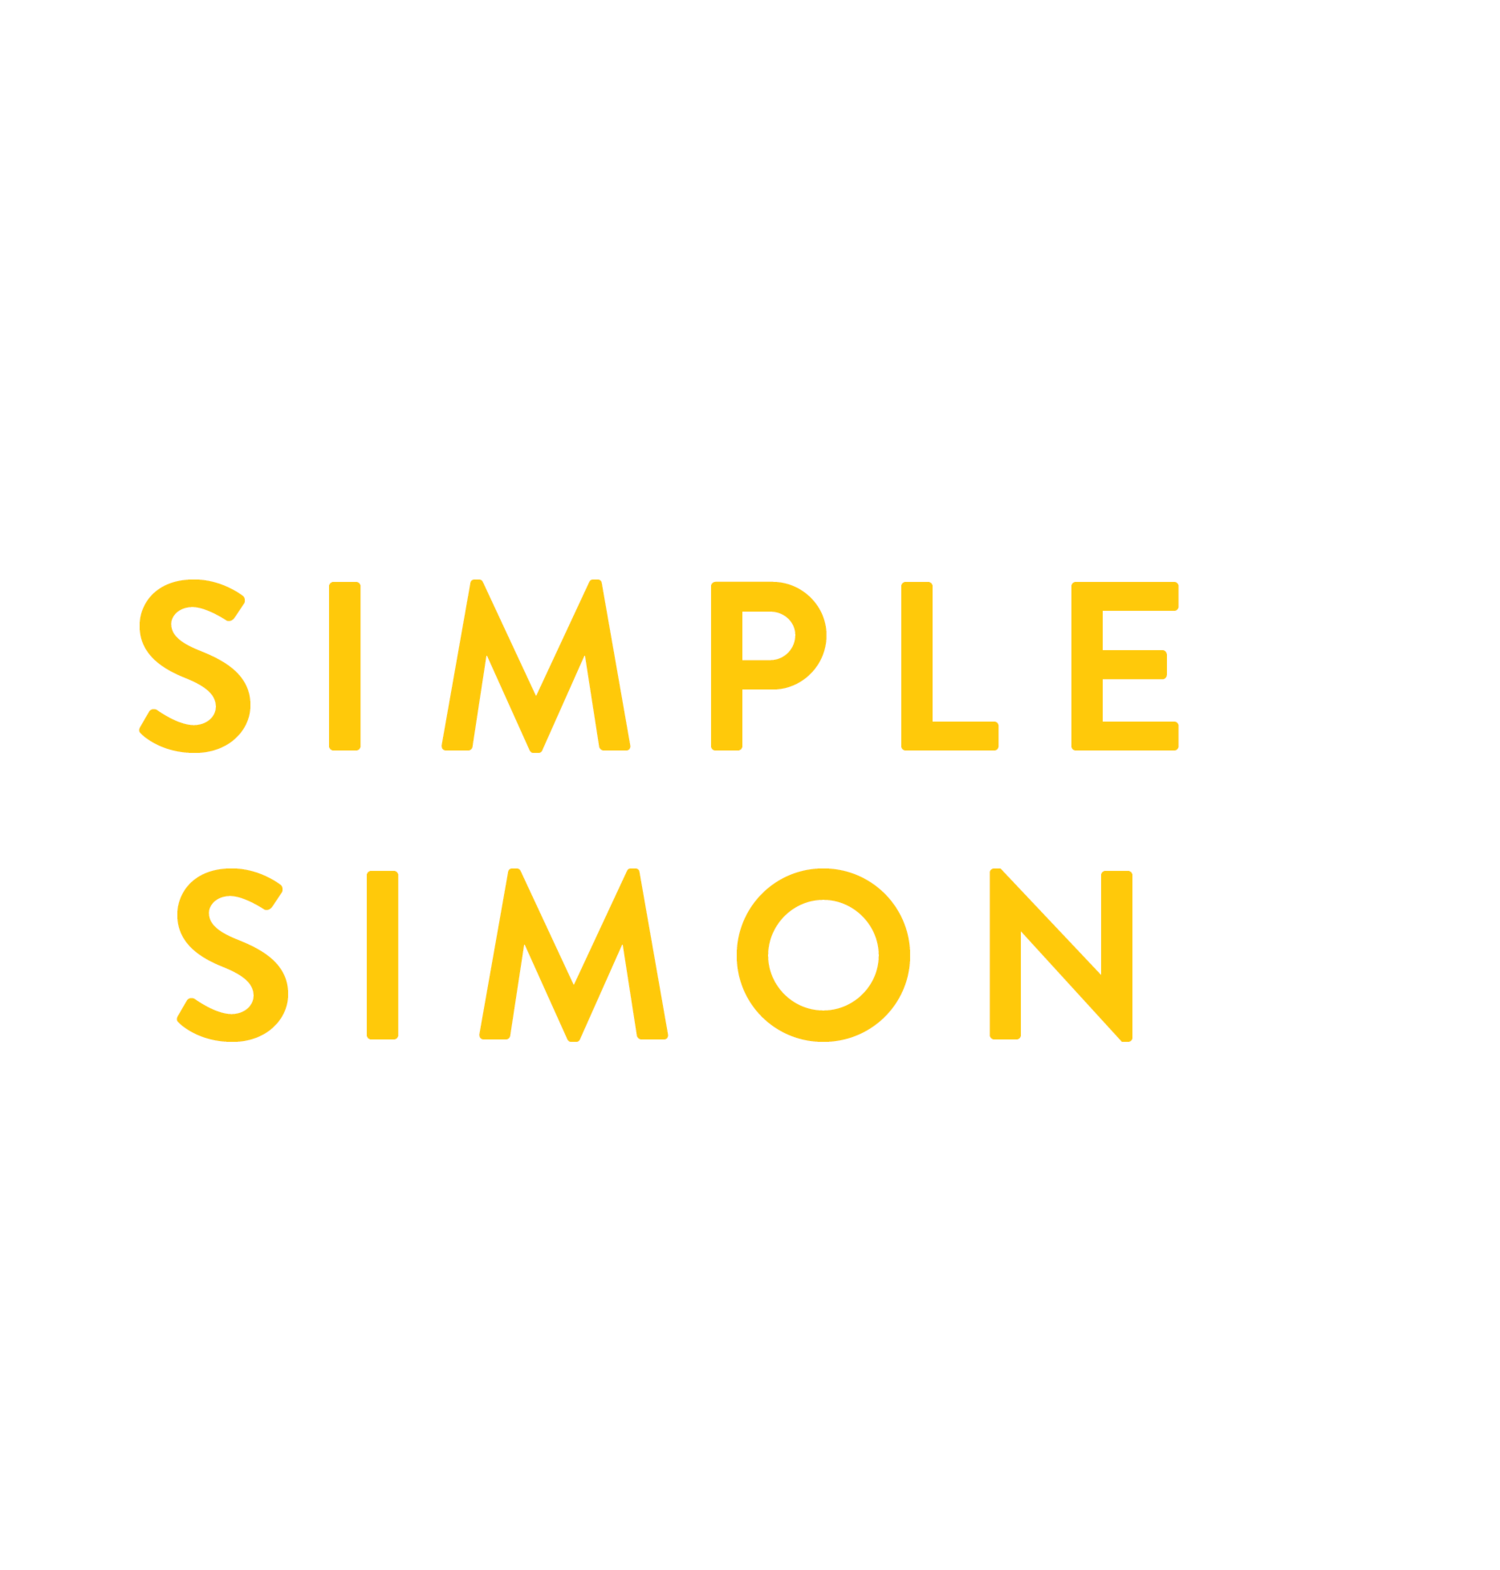 SIMPLE SIMON DESIGN